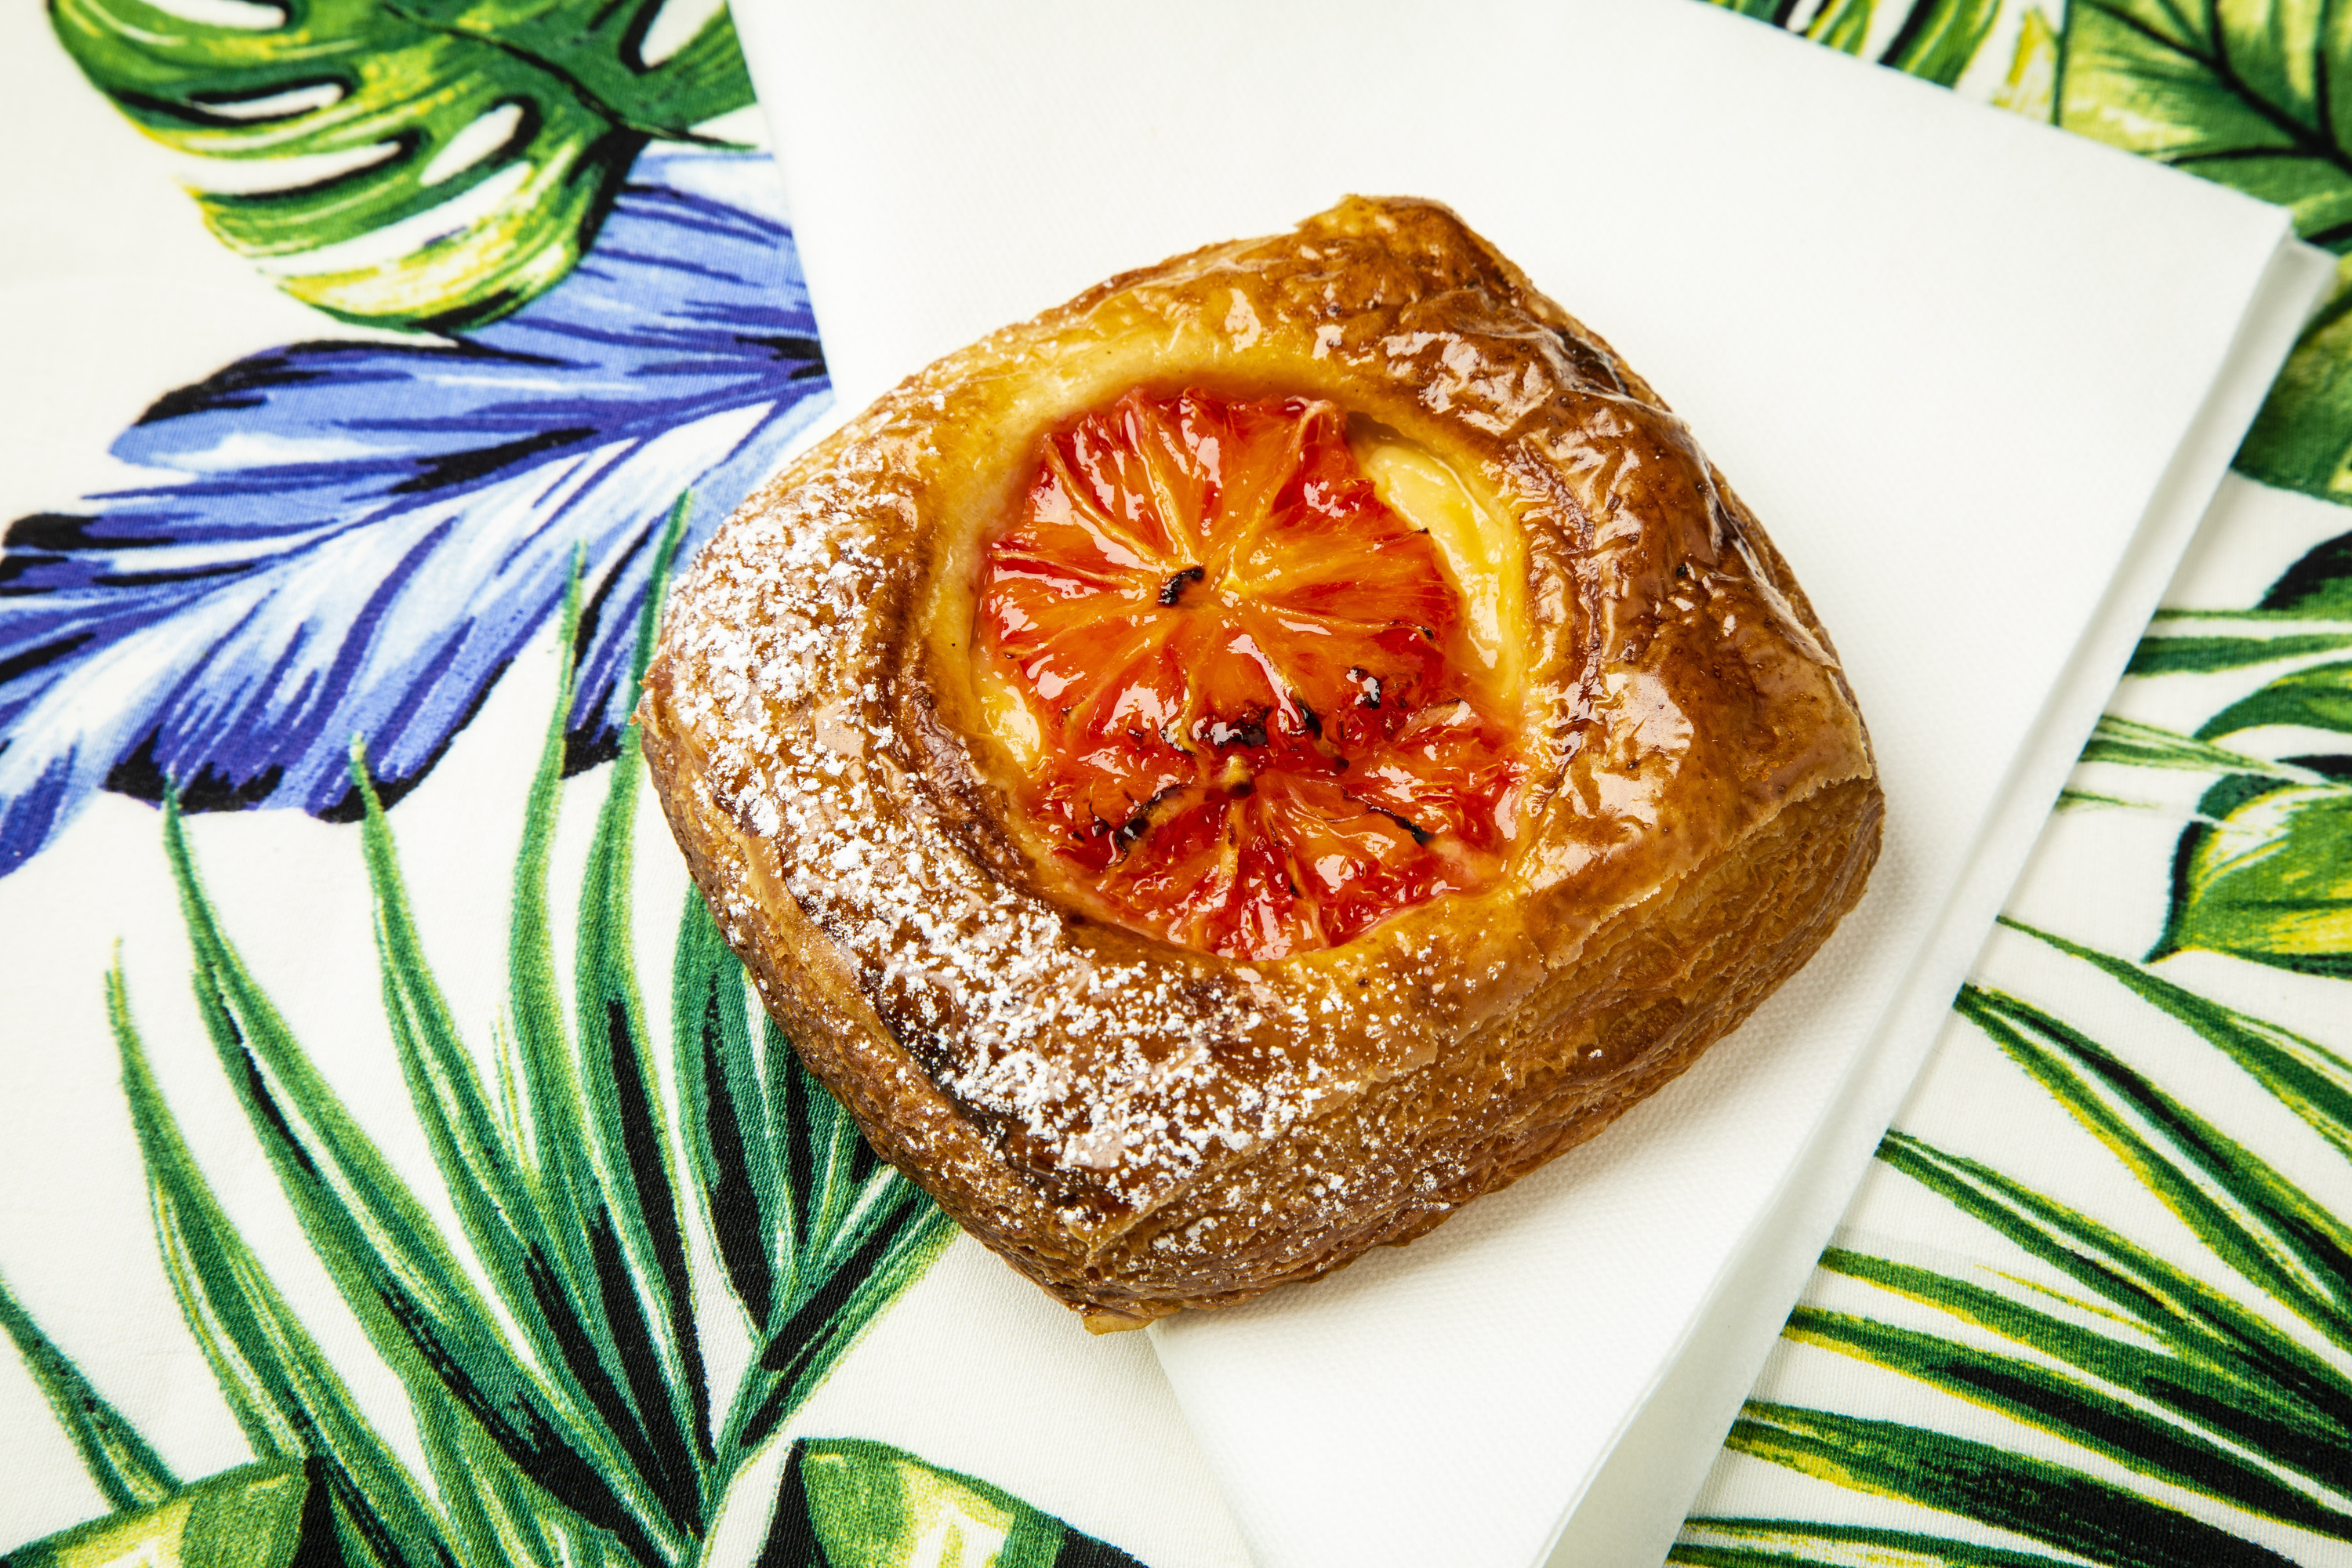 Blood-orange Danish at Jolene bakery in London